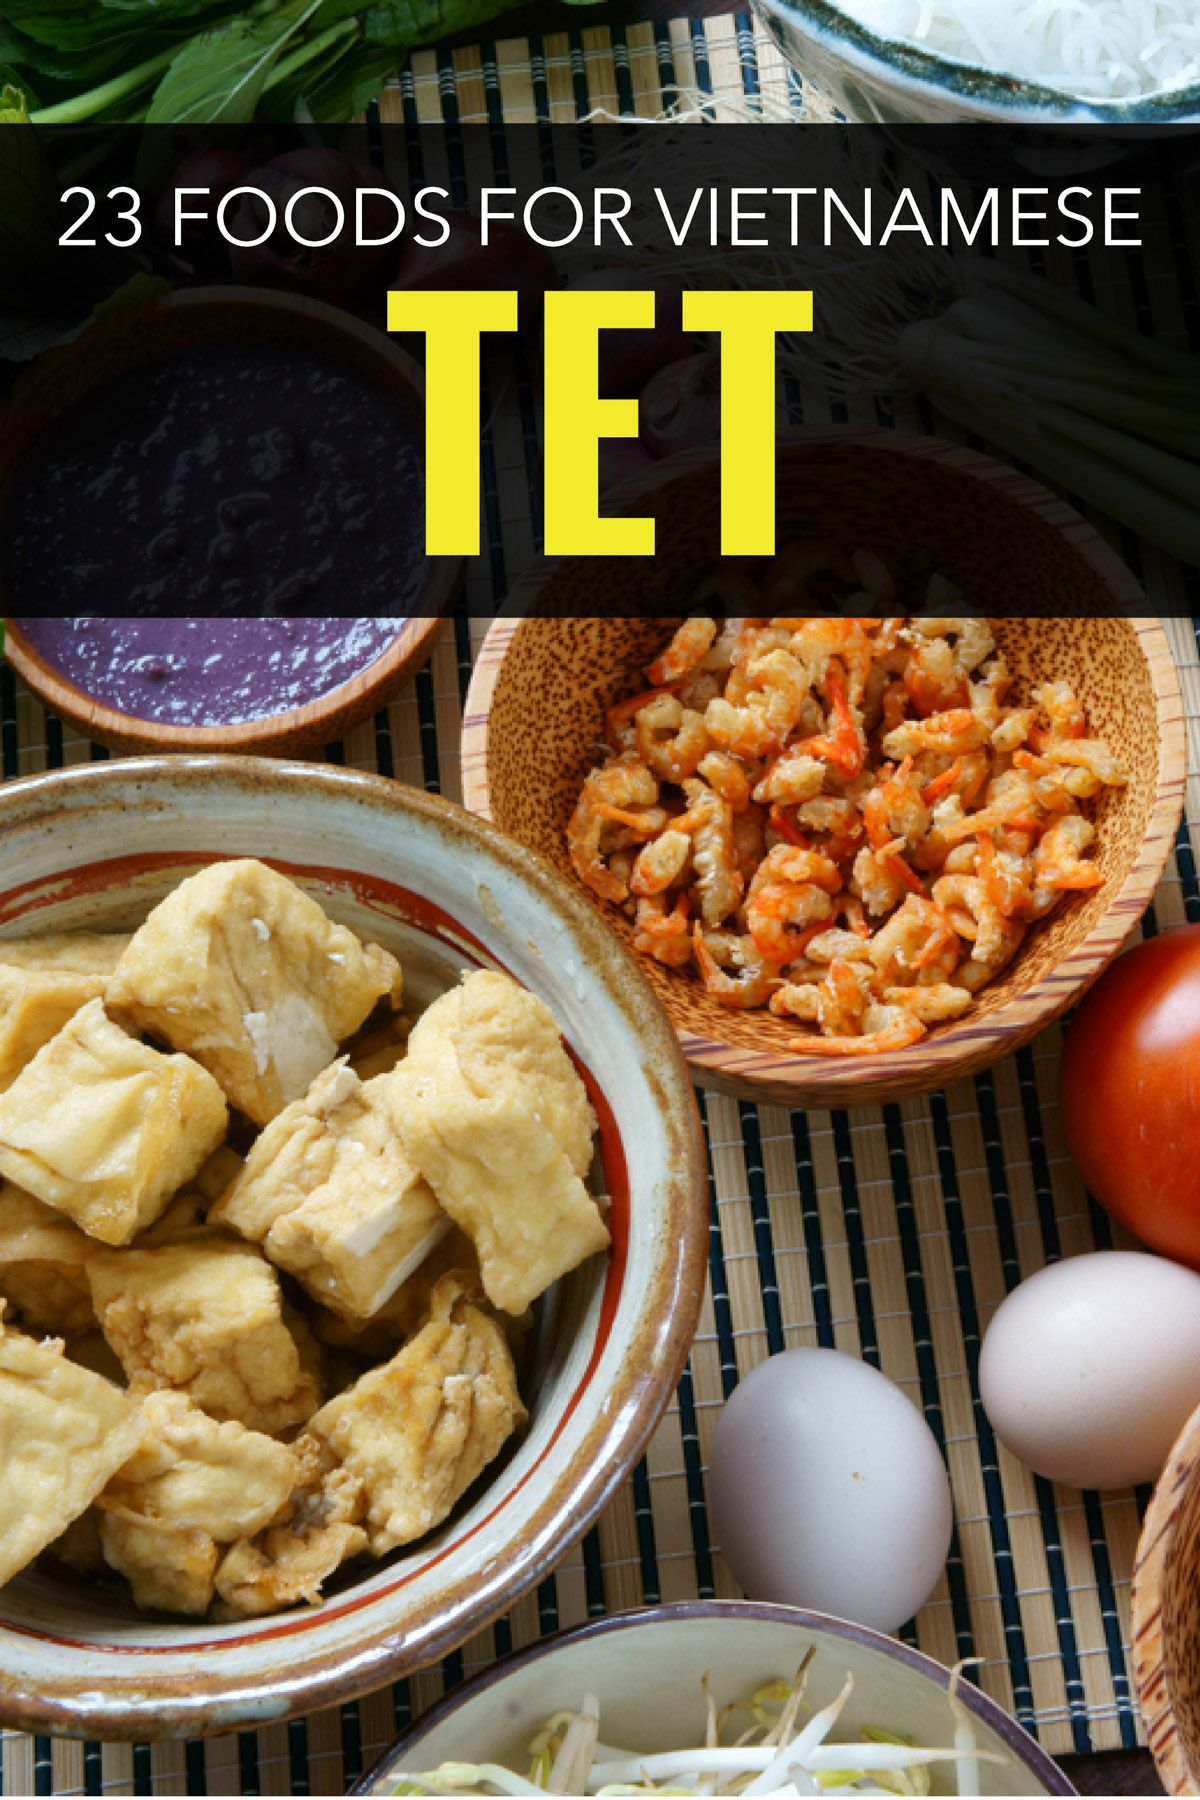 Celebrate Tet with Food! Here are 23 Vietnamese foods you